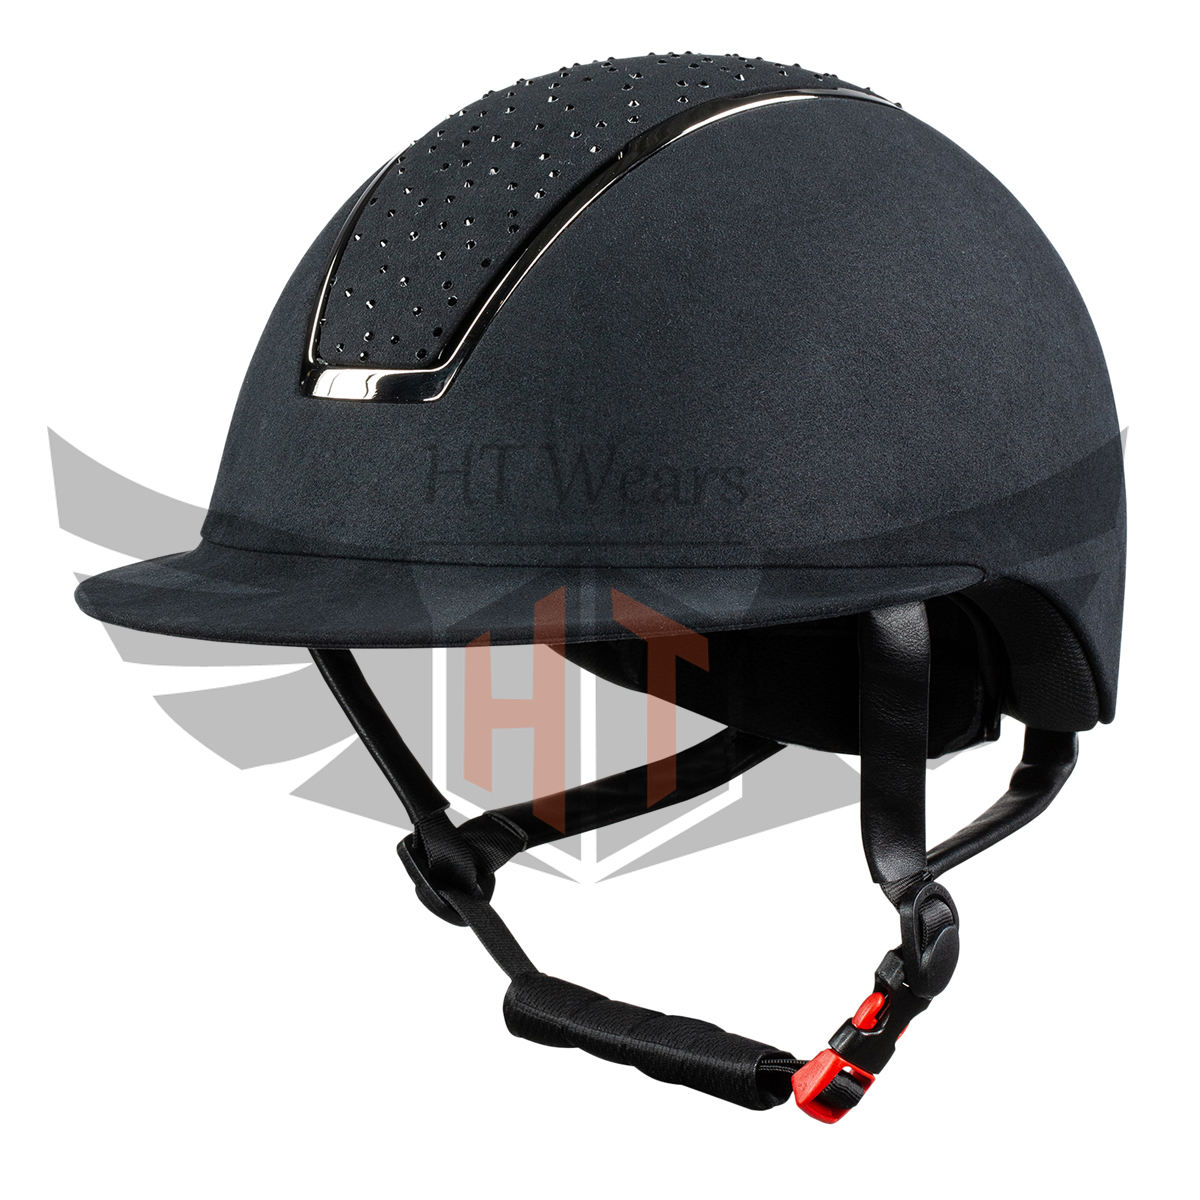 Horse racing equestrian helmet adult certified durable ABS horse riding helmets equestrian helmet